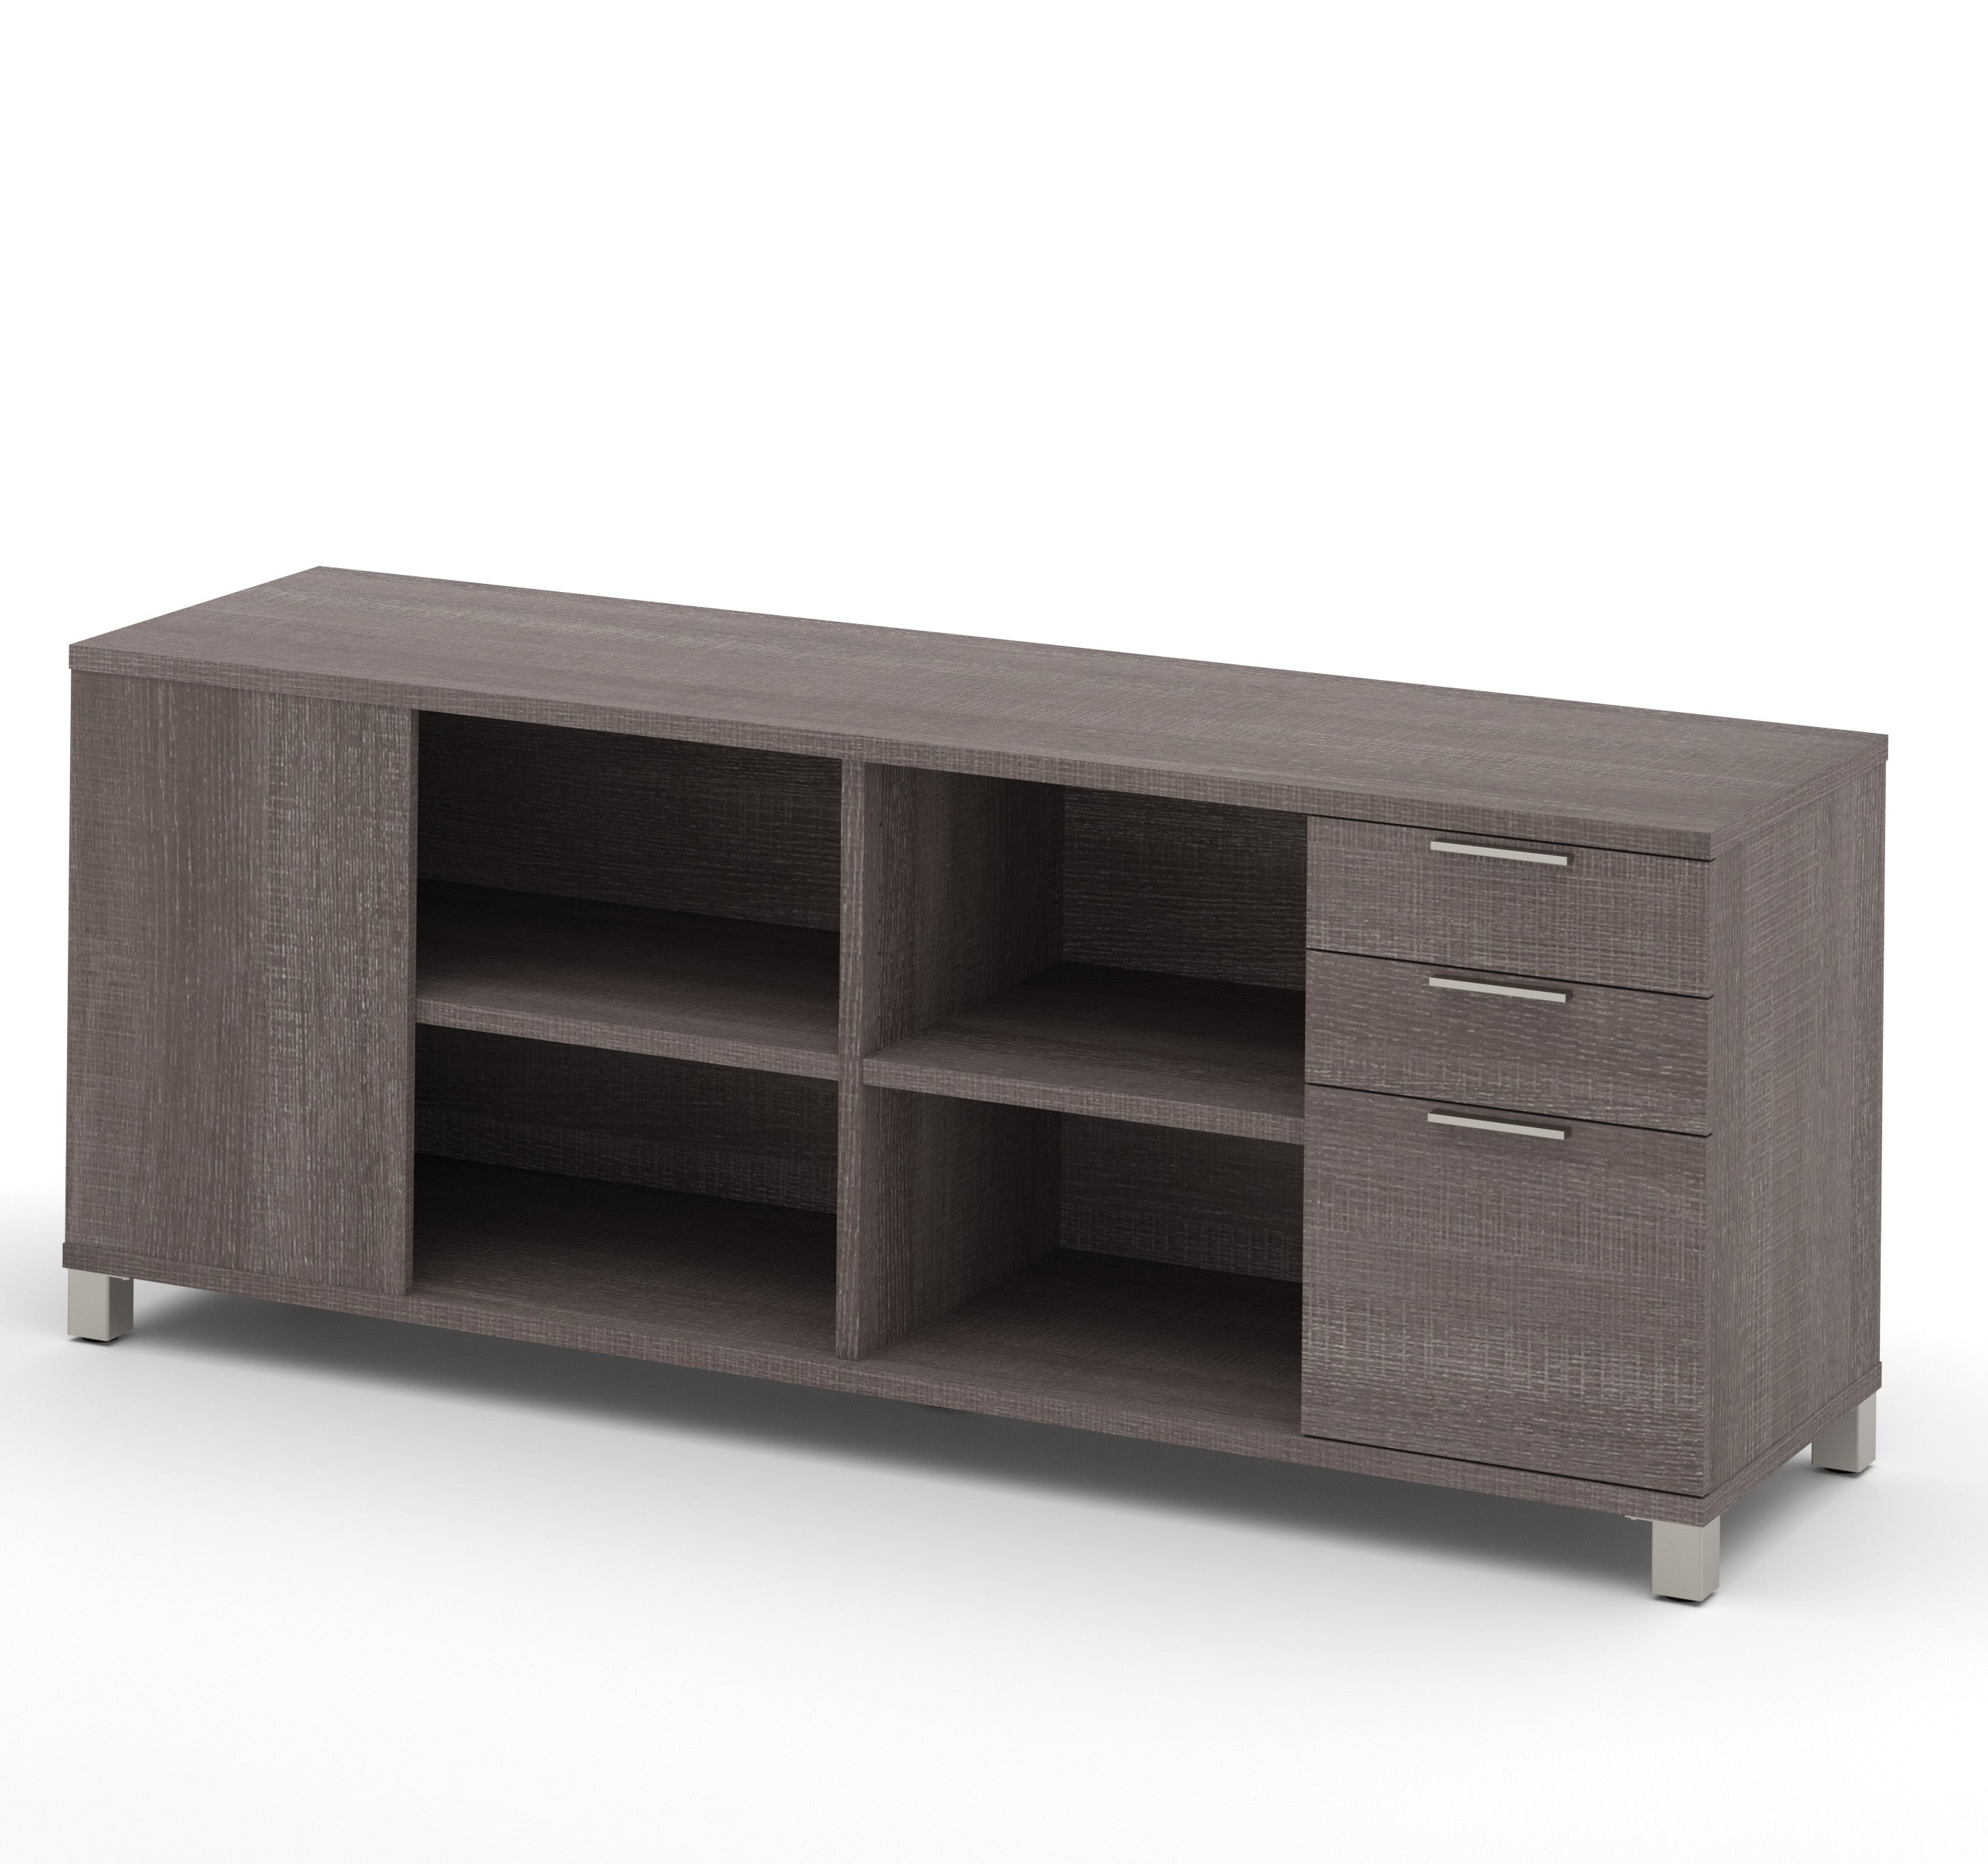 Modern Grey Credenza with Full Pedestal & Shelving